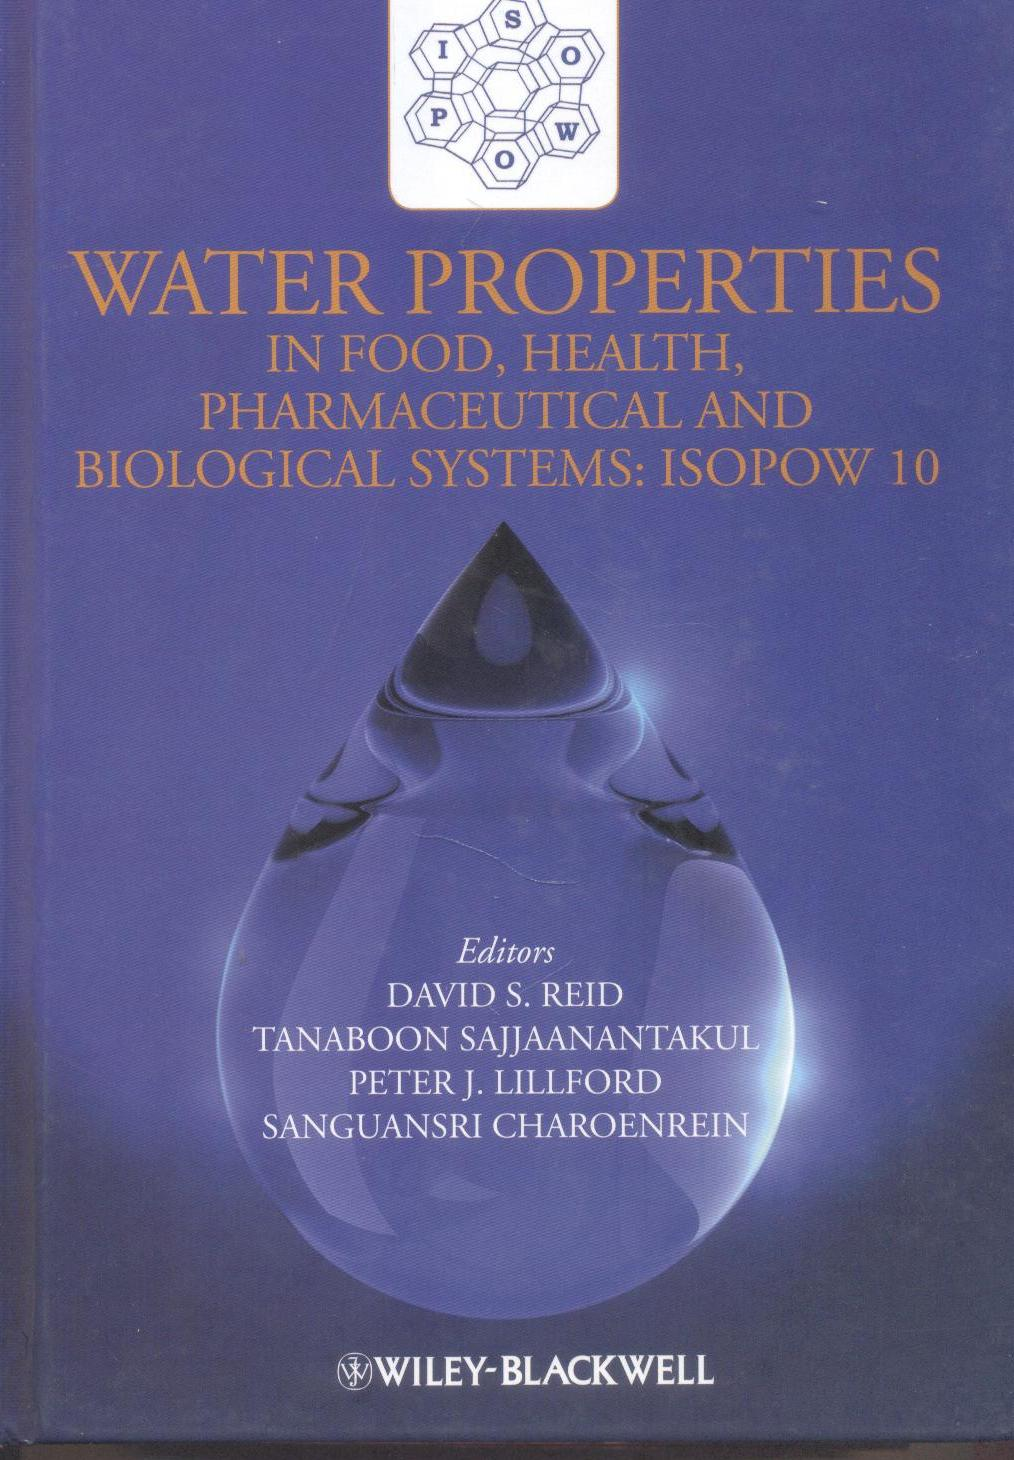 Cover of Water properties in food health, pharmaceutical and biological system